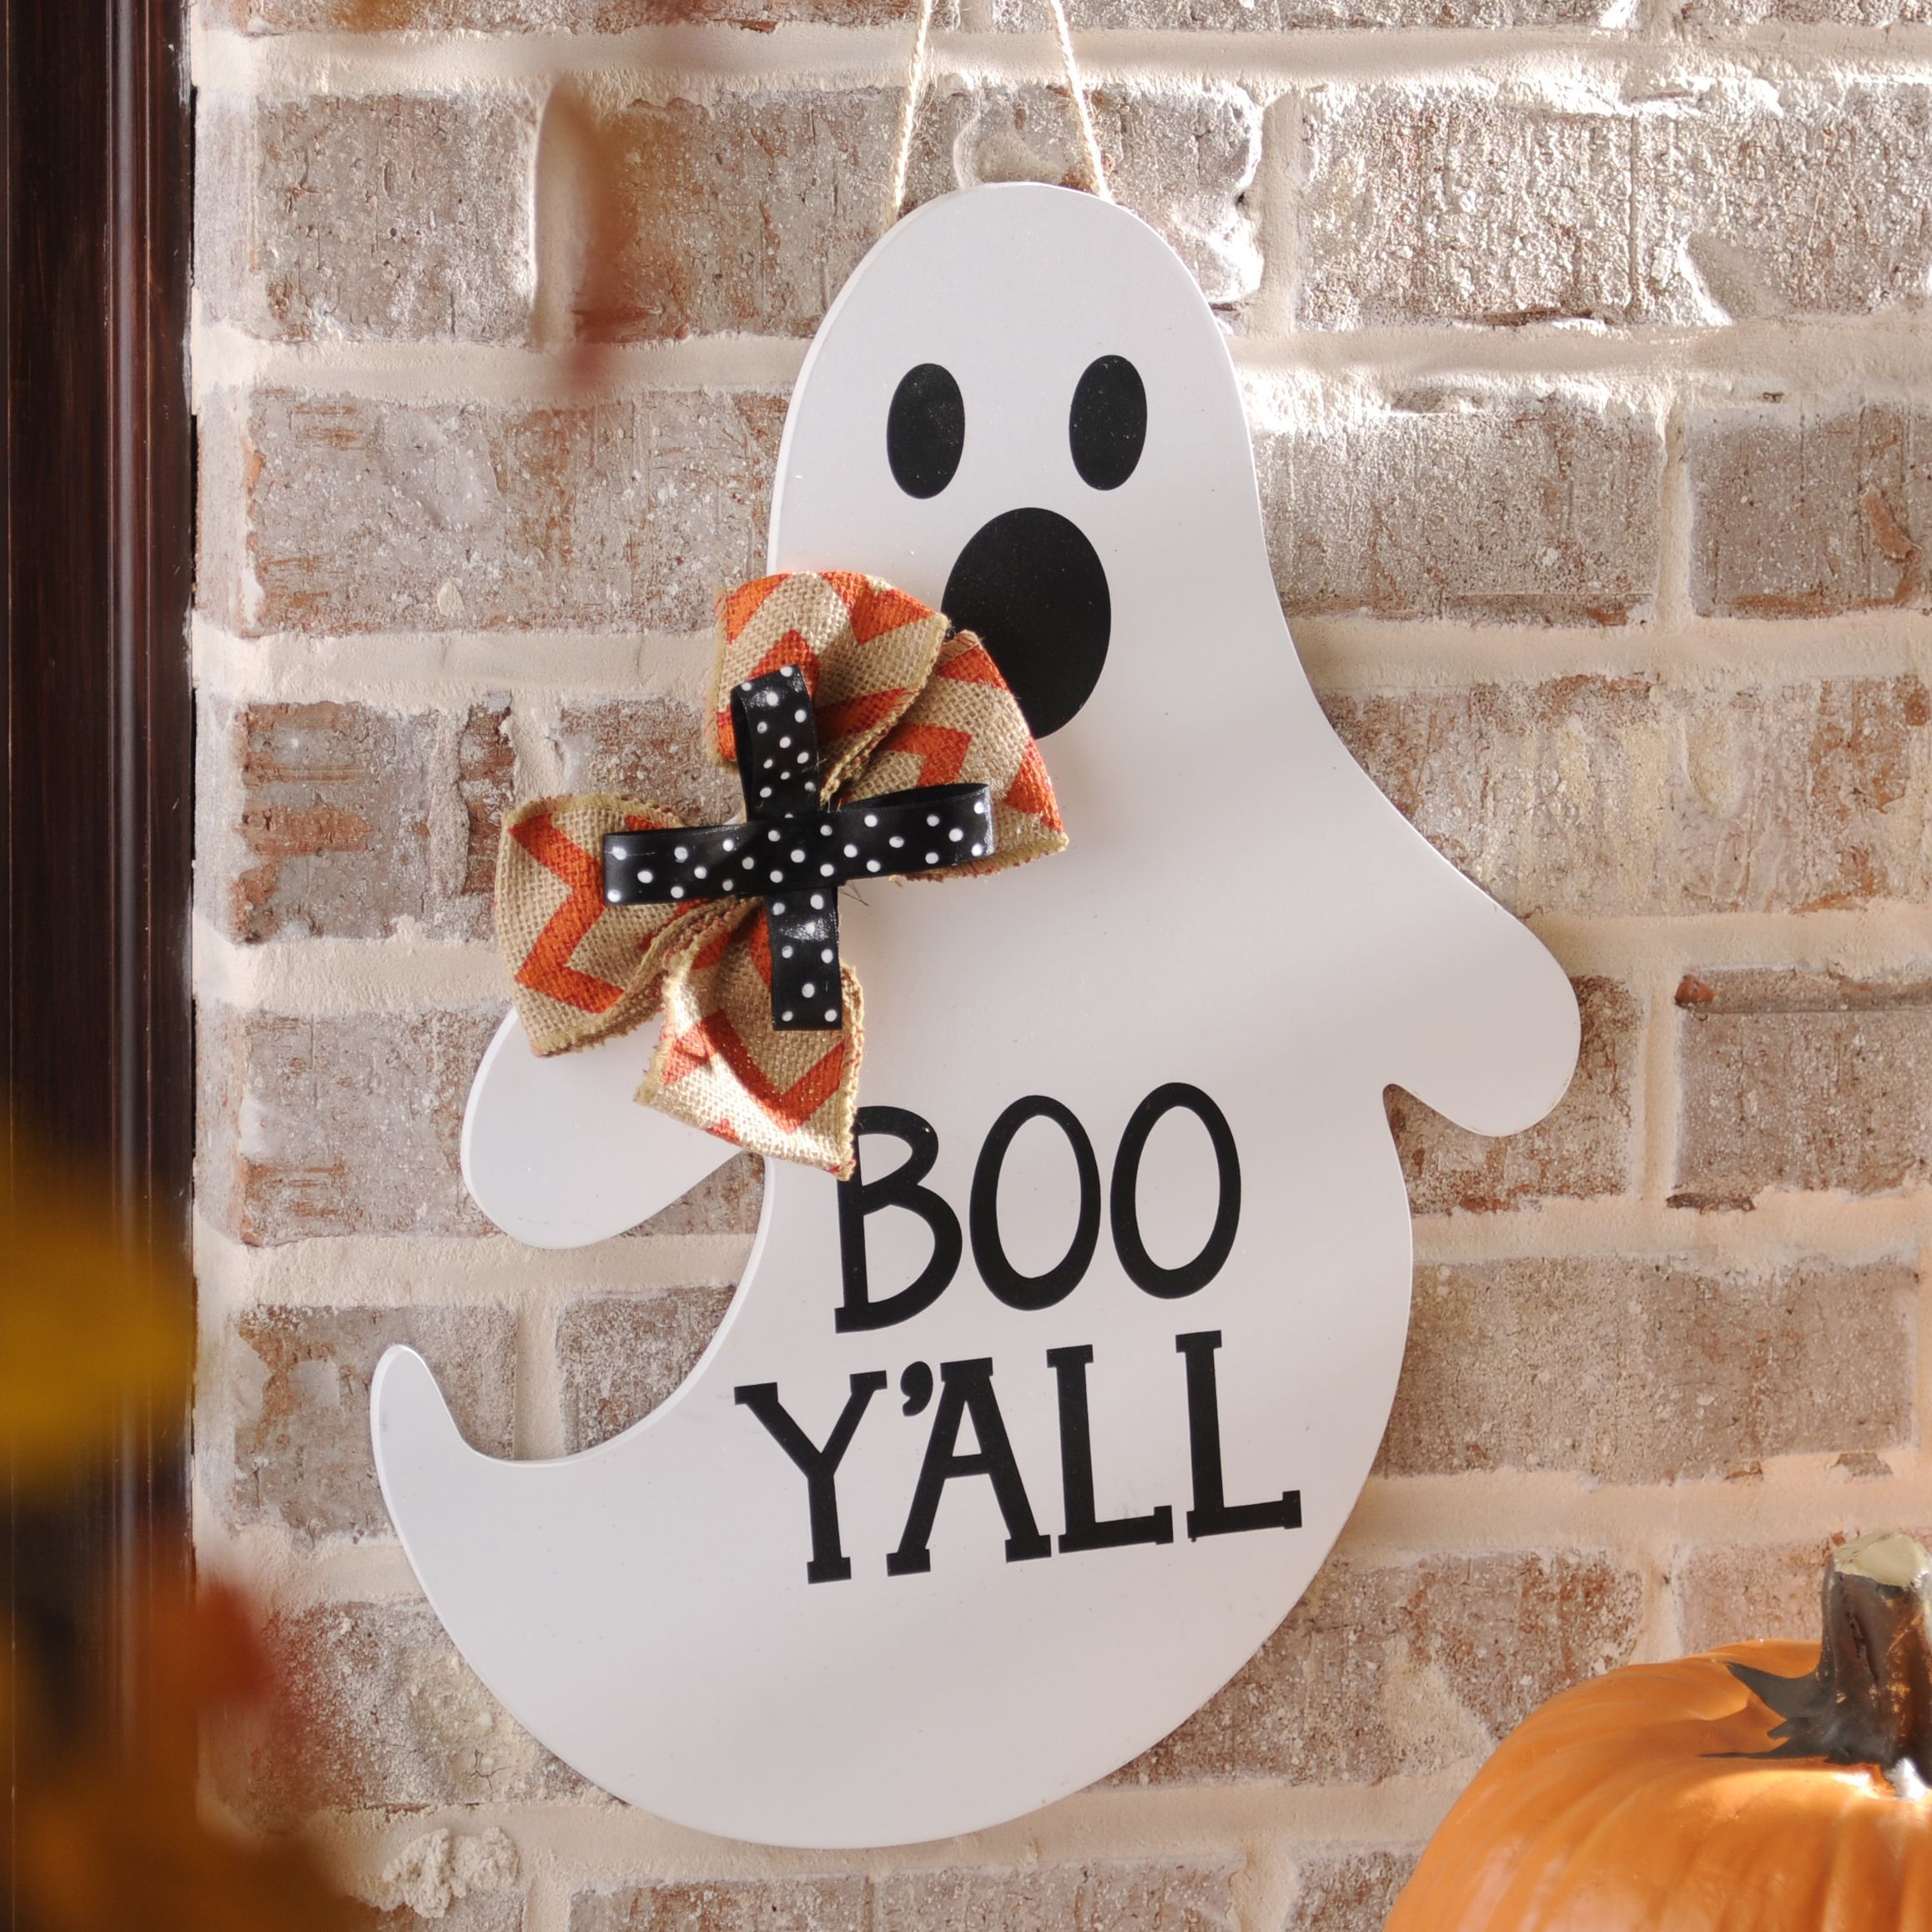 20+ Best Homemade Halloween Decorations Ideas Homemade halloween - Homemade Halloween Decorations